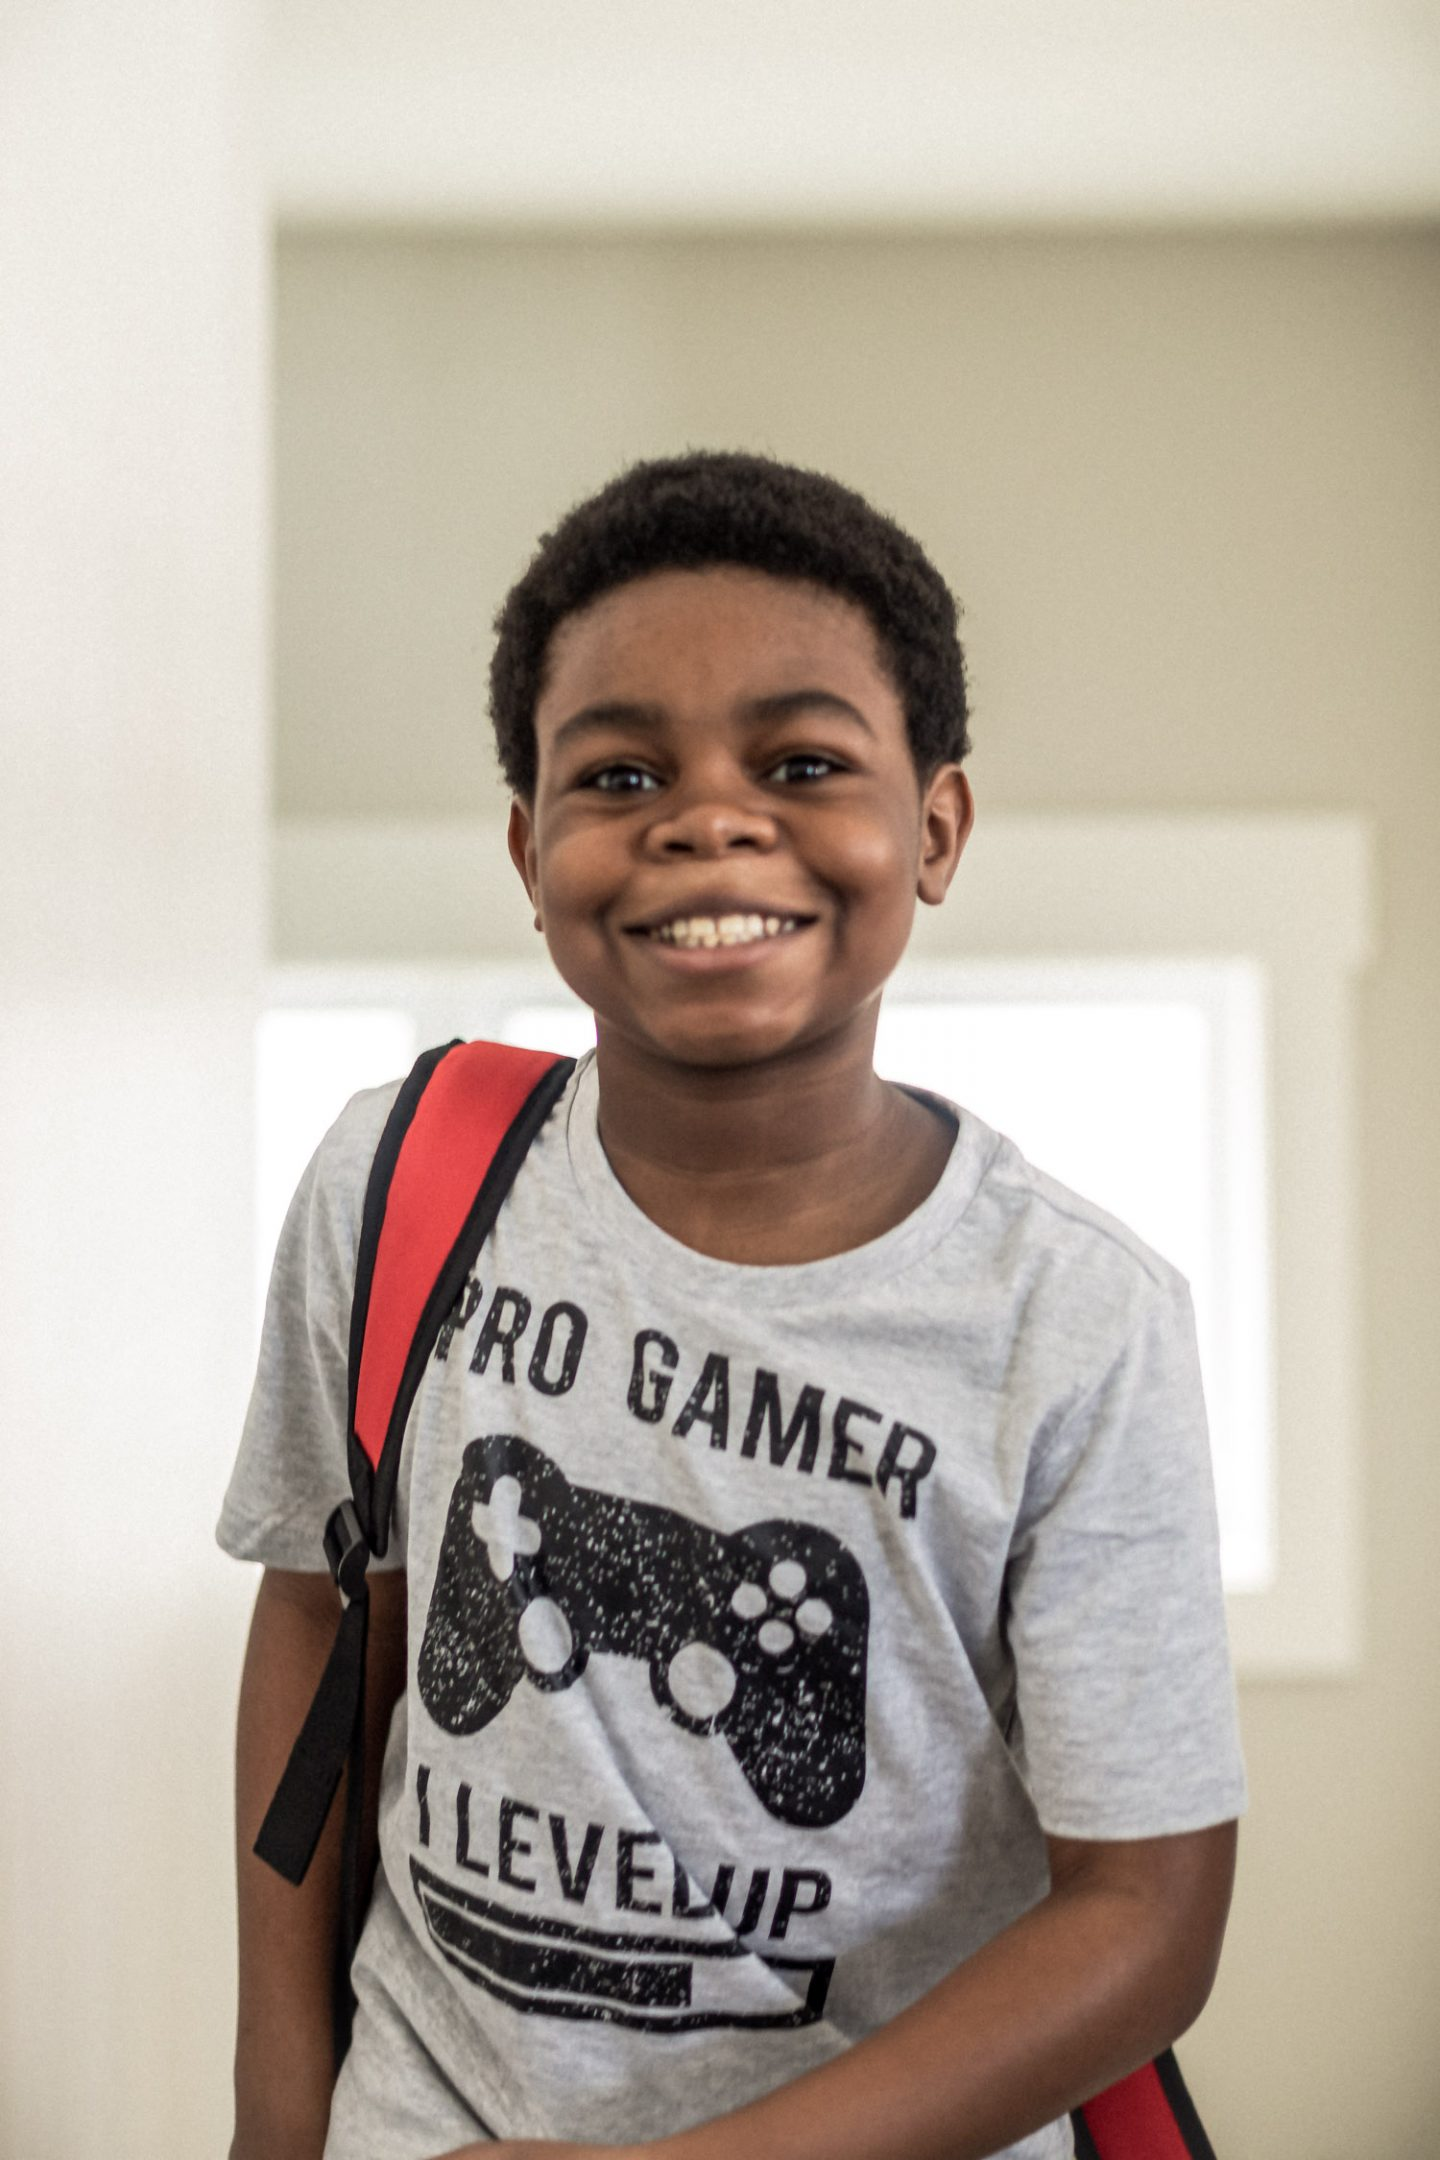 atlanta blogger's kids wearing walmart for back to school, how we are getting ready for online schooling, online schooling during covid, walmart, back to school with walmart, back to school supplies from walmart